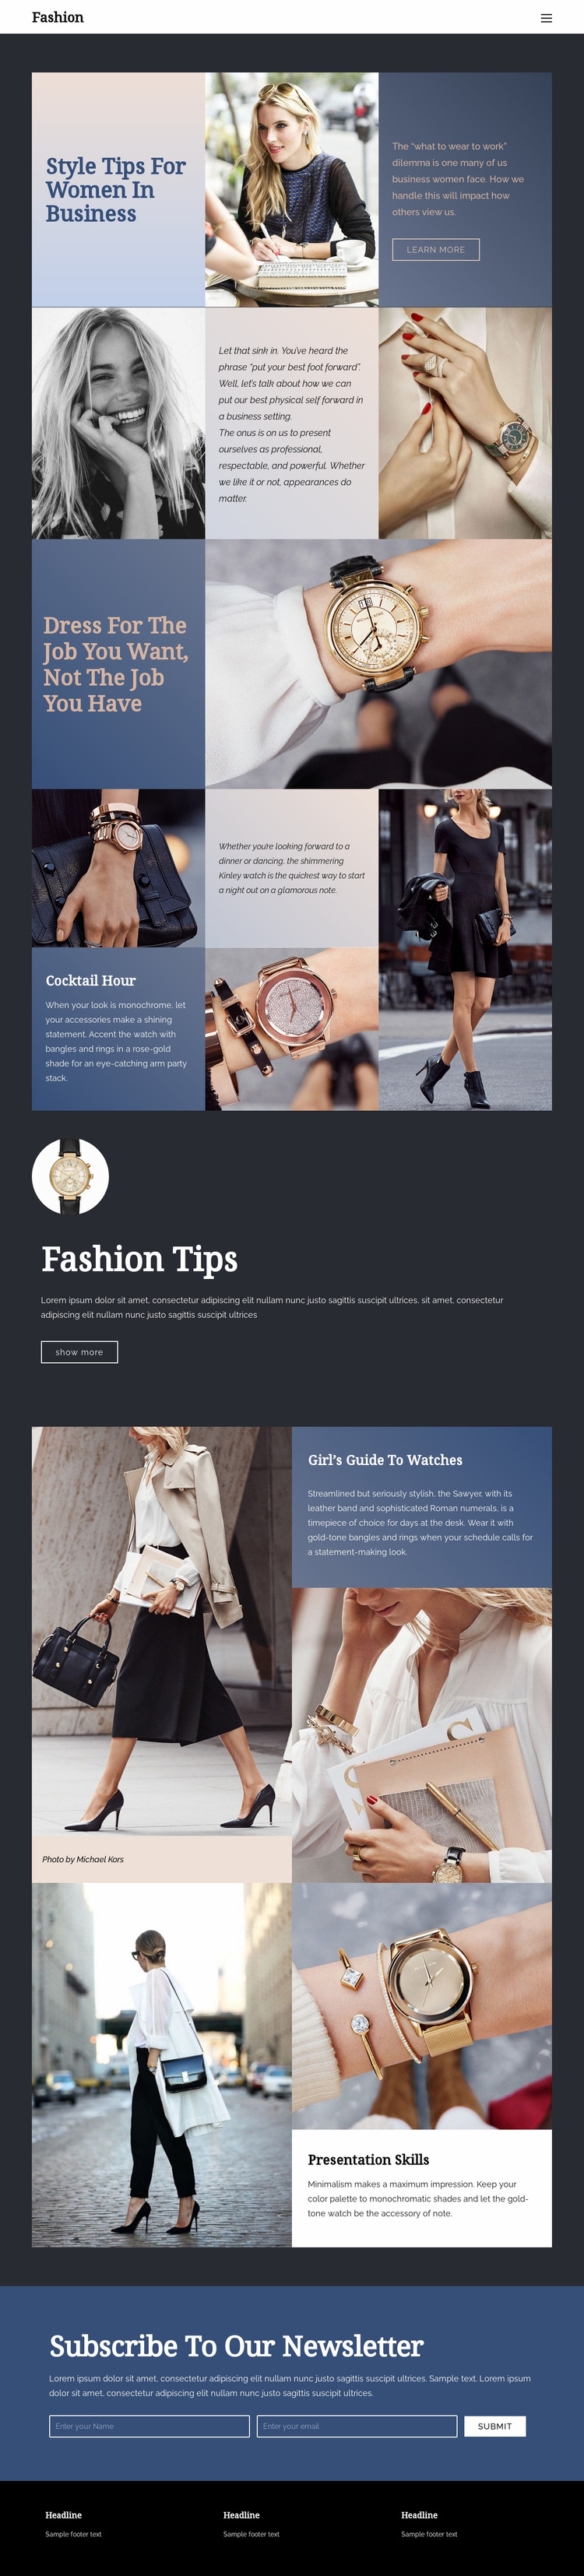 Tips to succeed in fashion Web Page Design